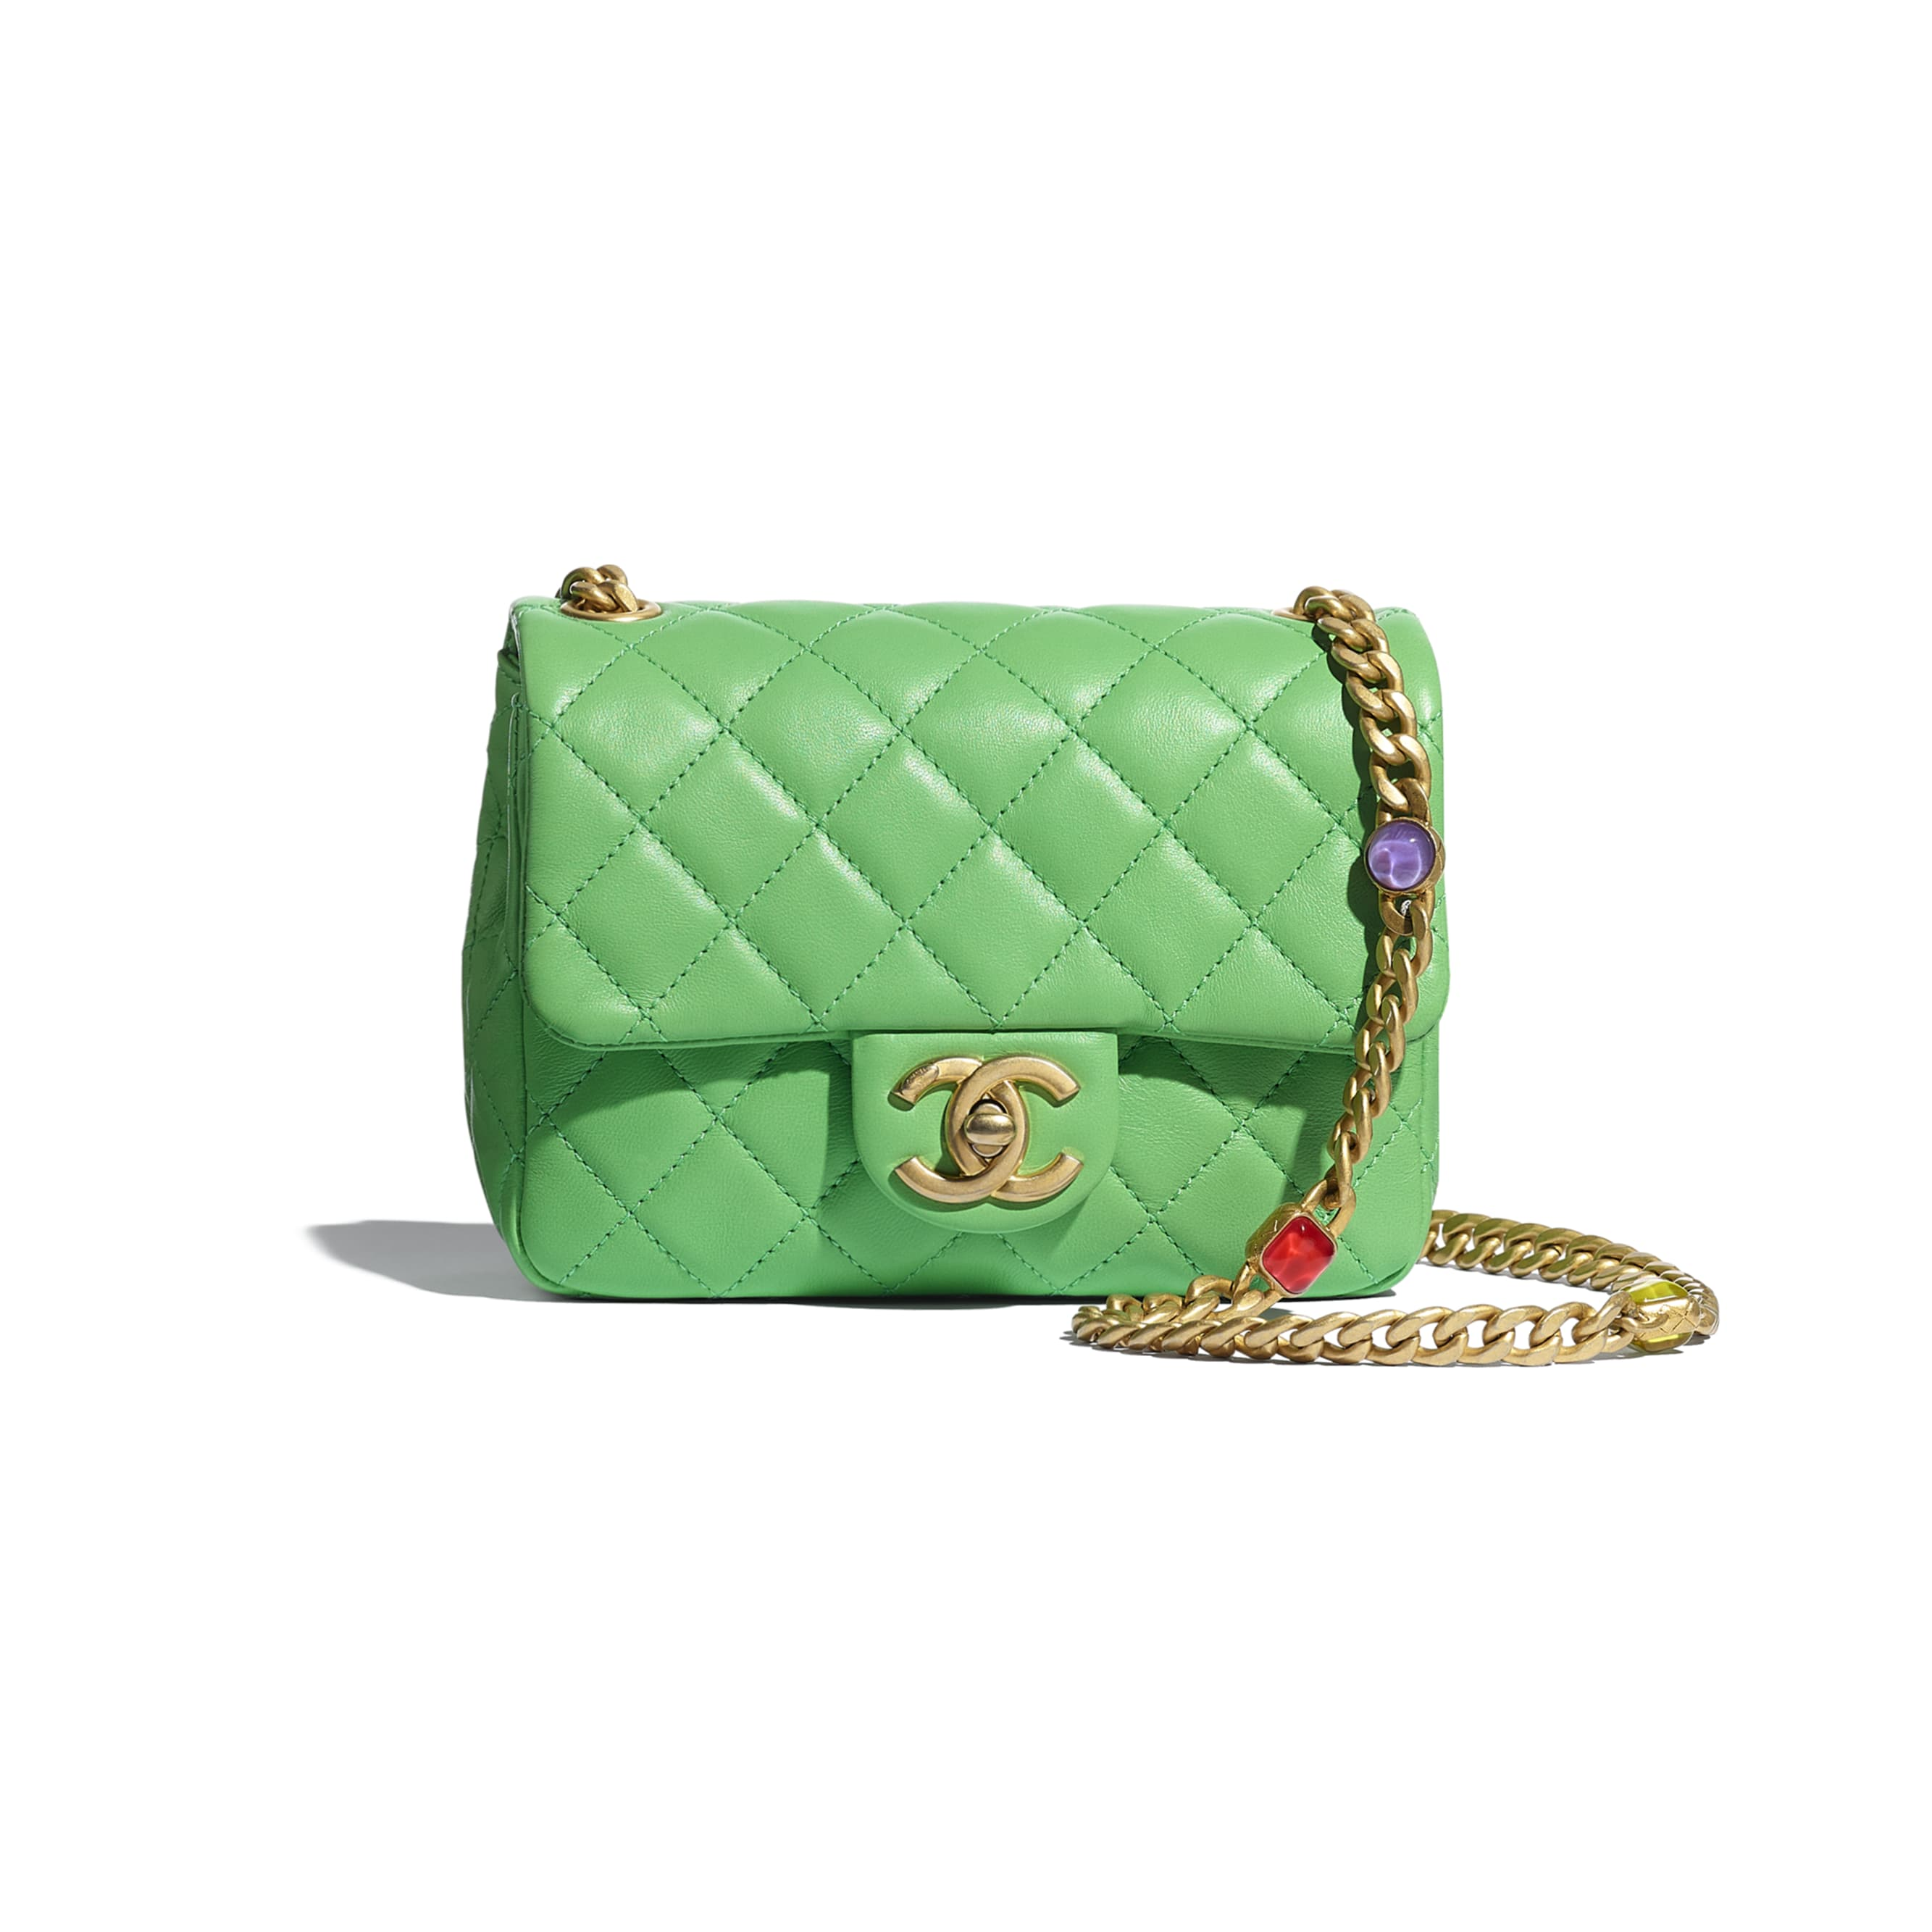 Flap Bag - Green - Lambskin, Resin & Gold-Tone Metal - CHANEL - Default view - see standard sized version